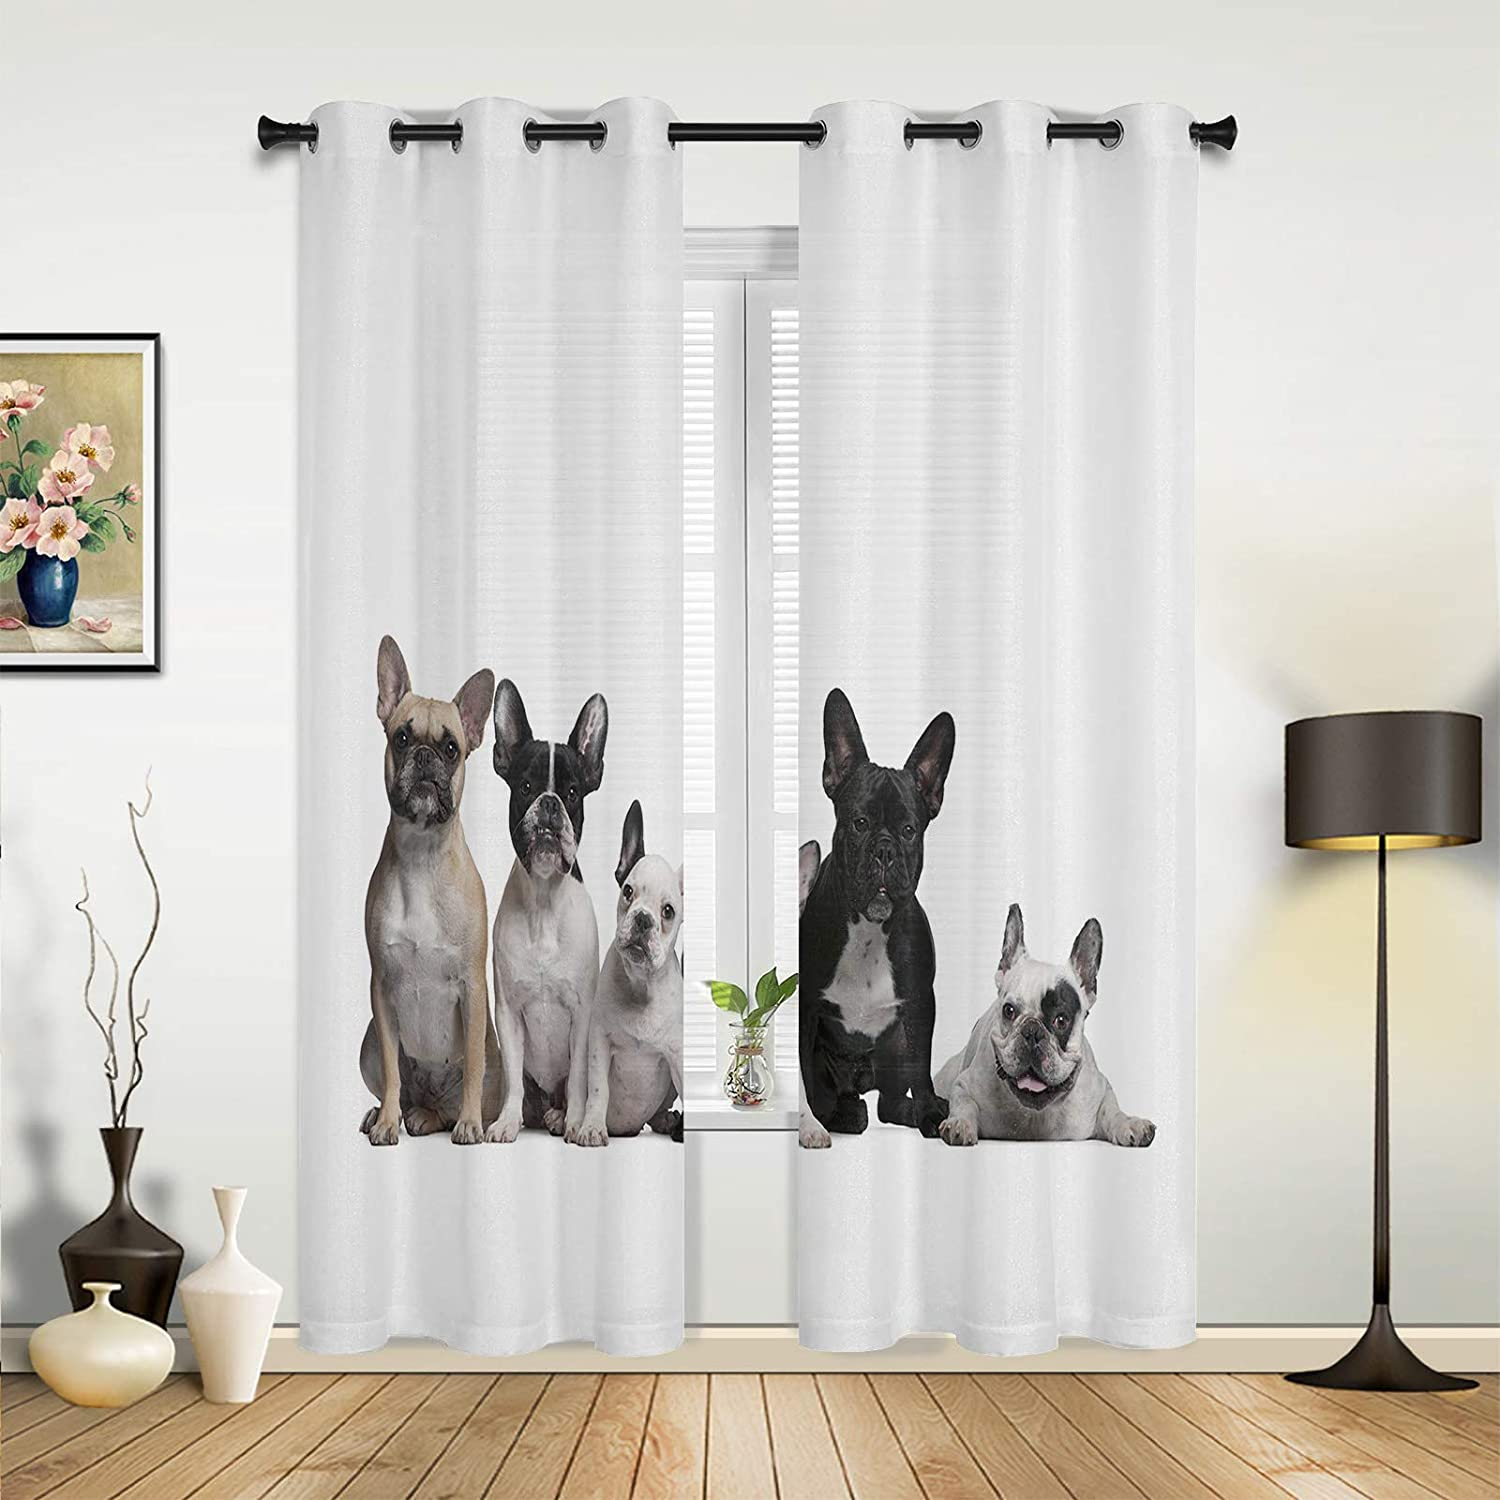 Beauty Decor Window Sheer Curtains for Frenc Living Wholesale Quality inspection Bedroom Room